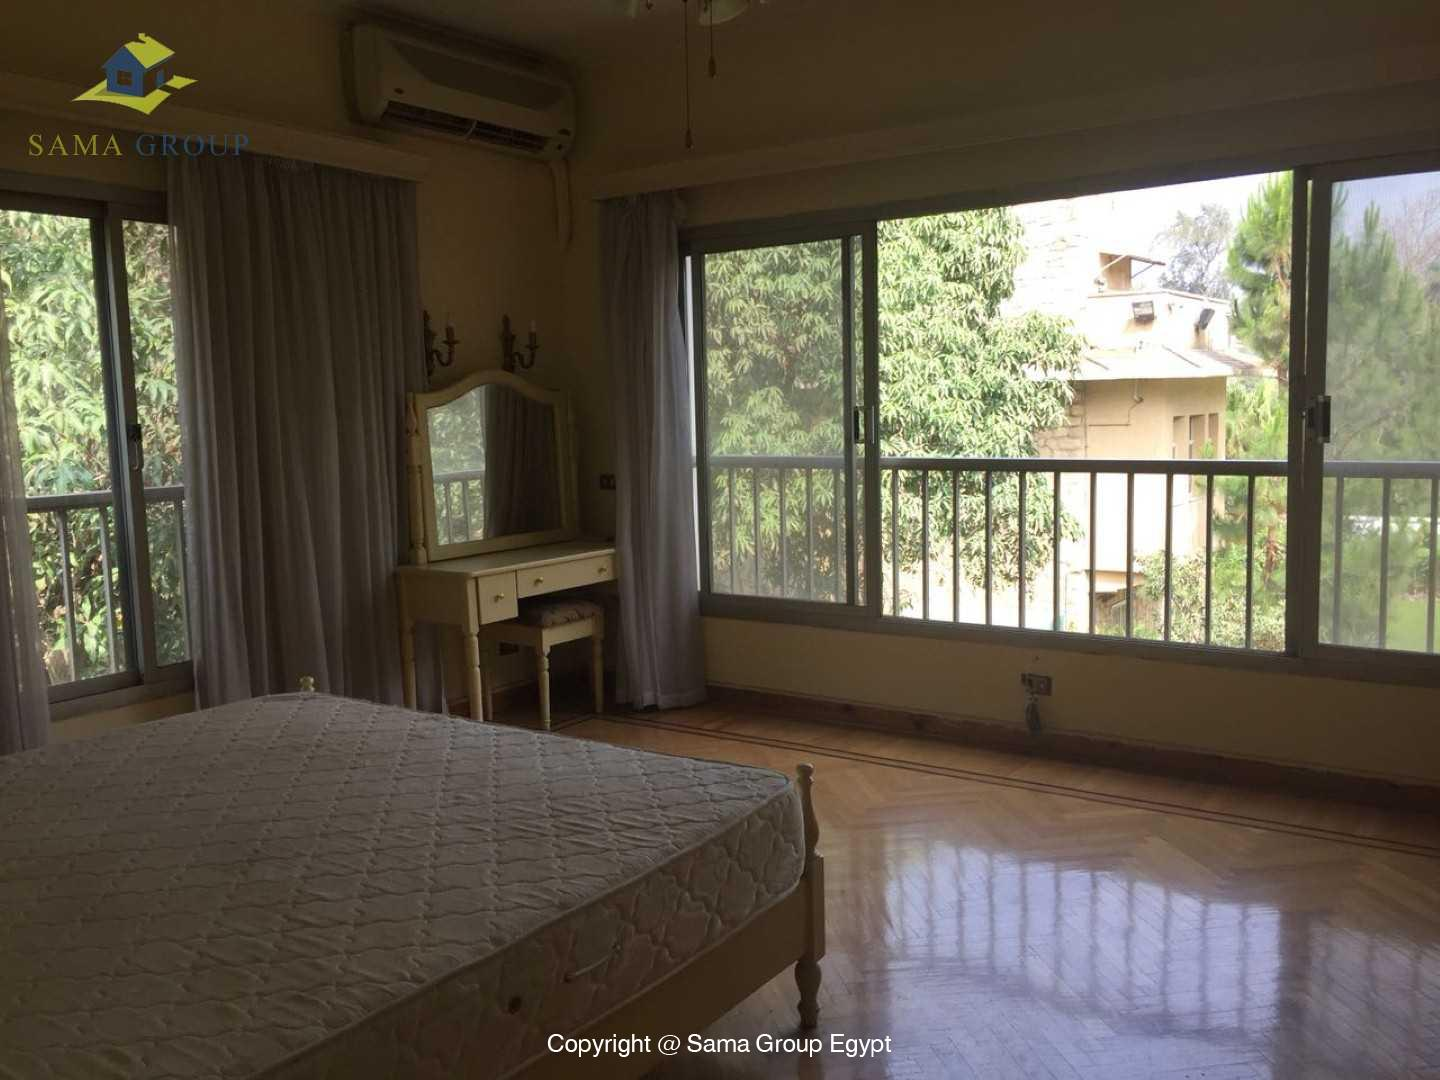 Fully Furnished Apartment For Rent In Maadi Sarayat,Furnished,Apartment NO #7